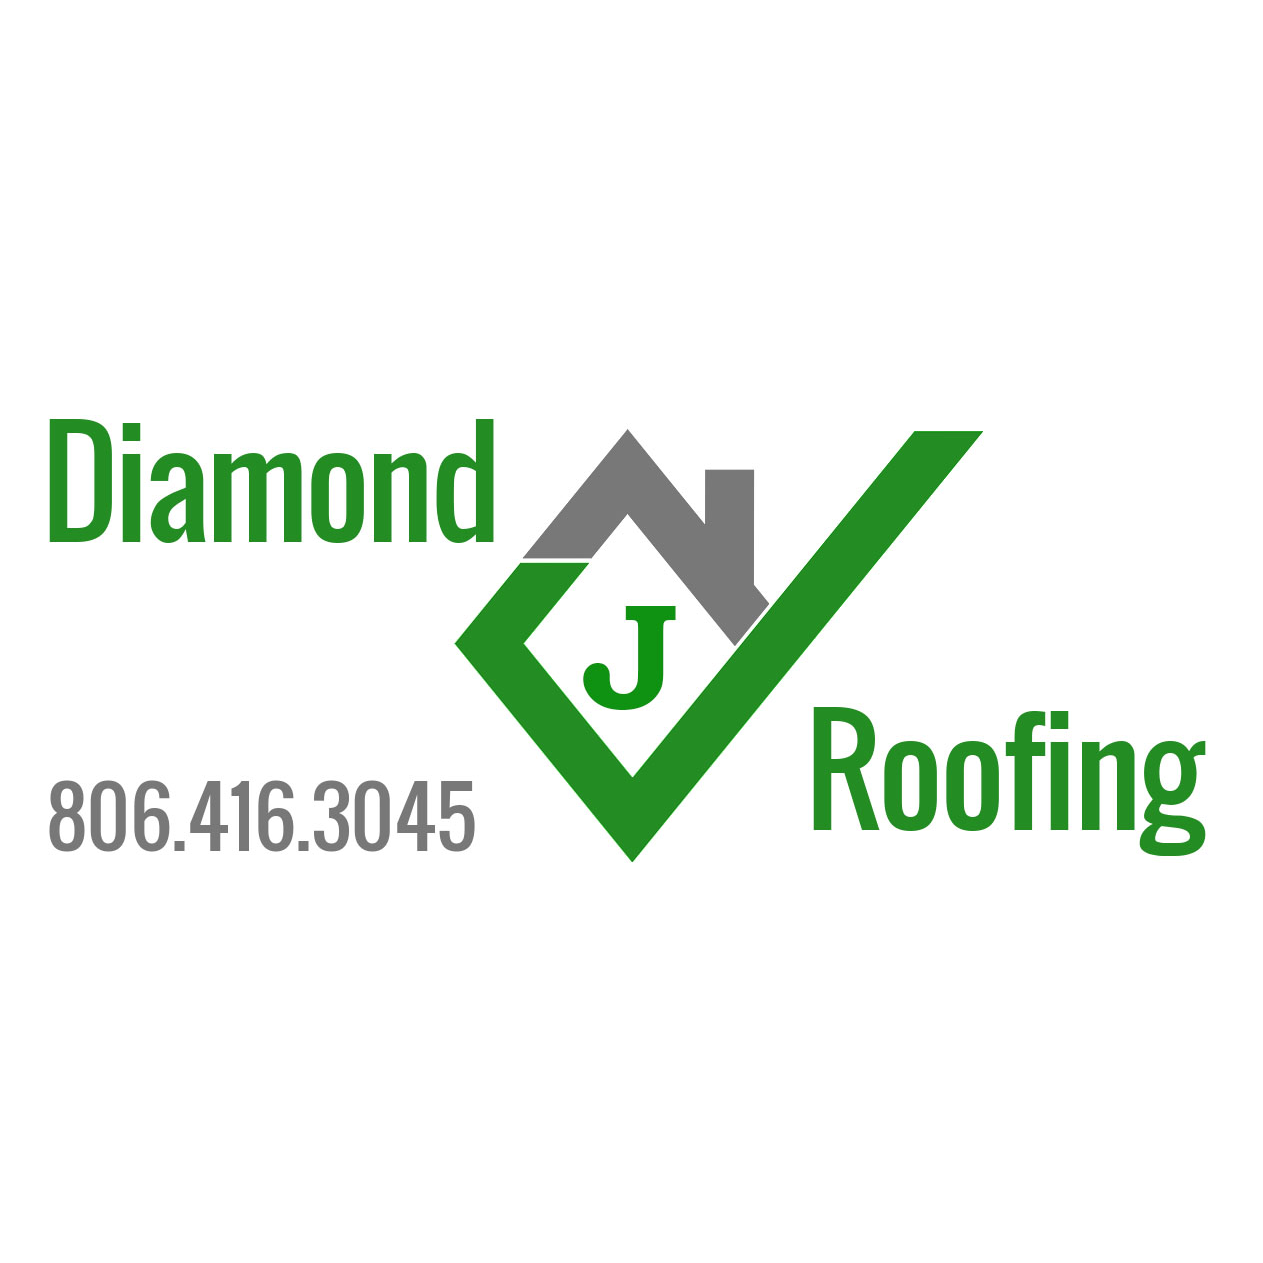 Diamond J Roofing LLC